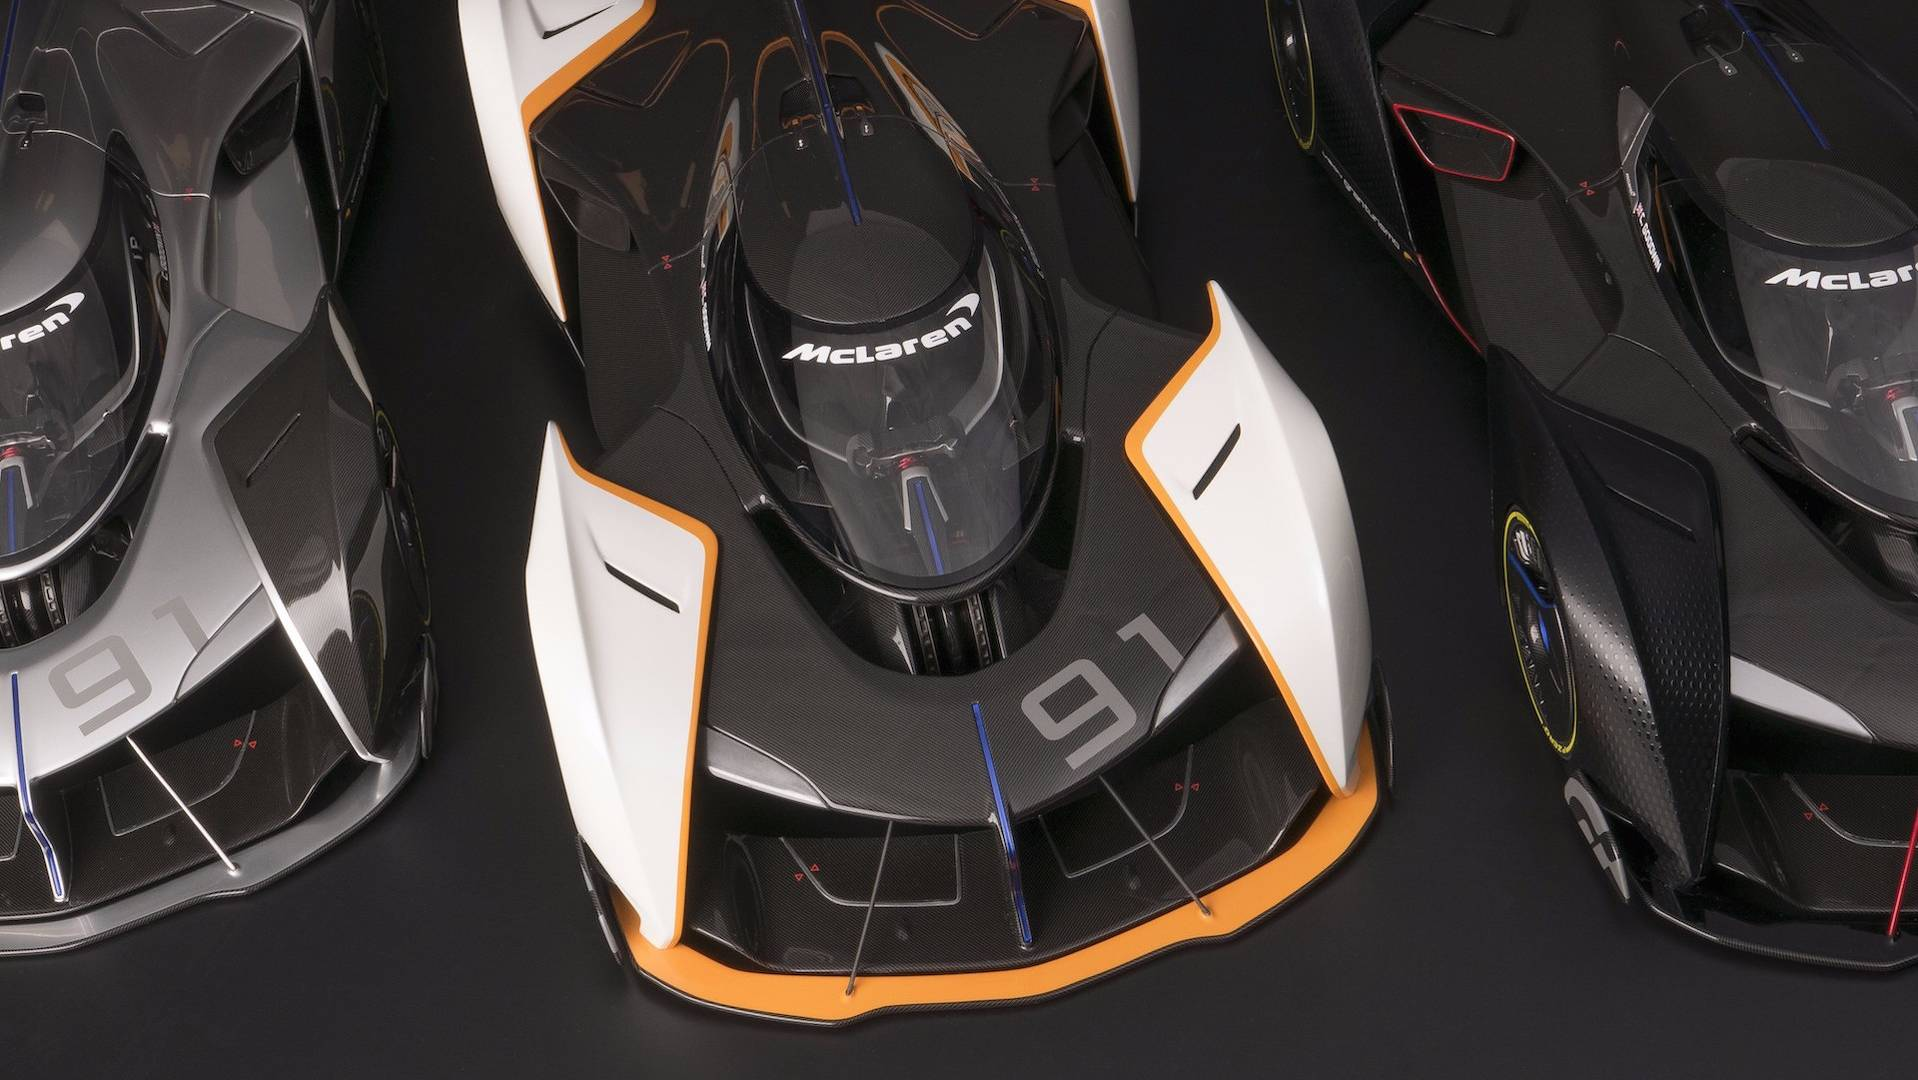 mclaren-ultimate-vision-gt-scale-model (13)